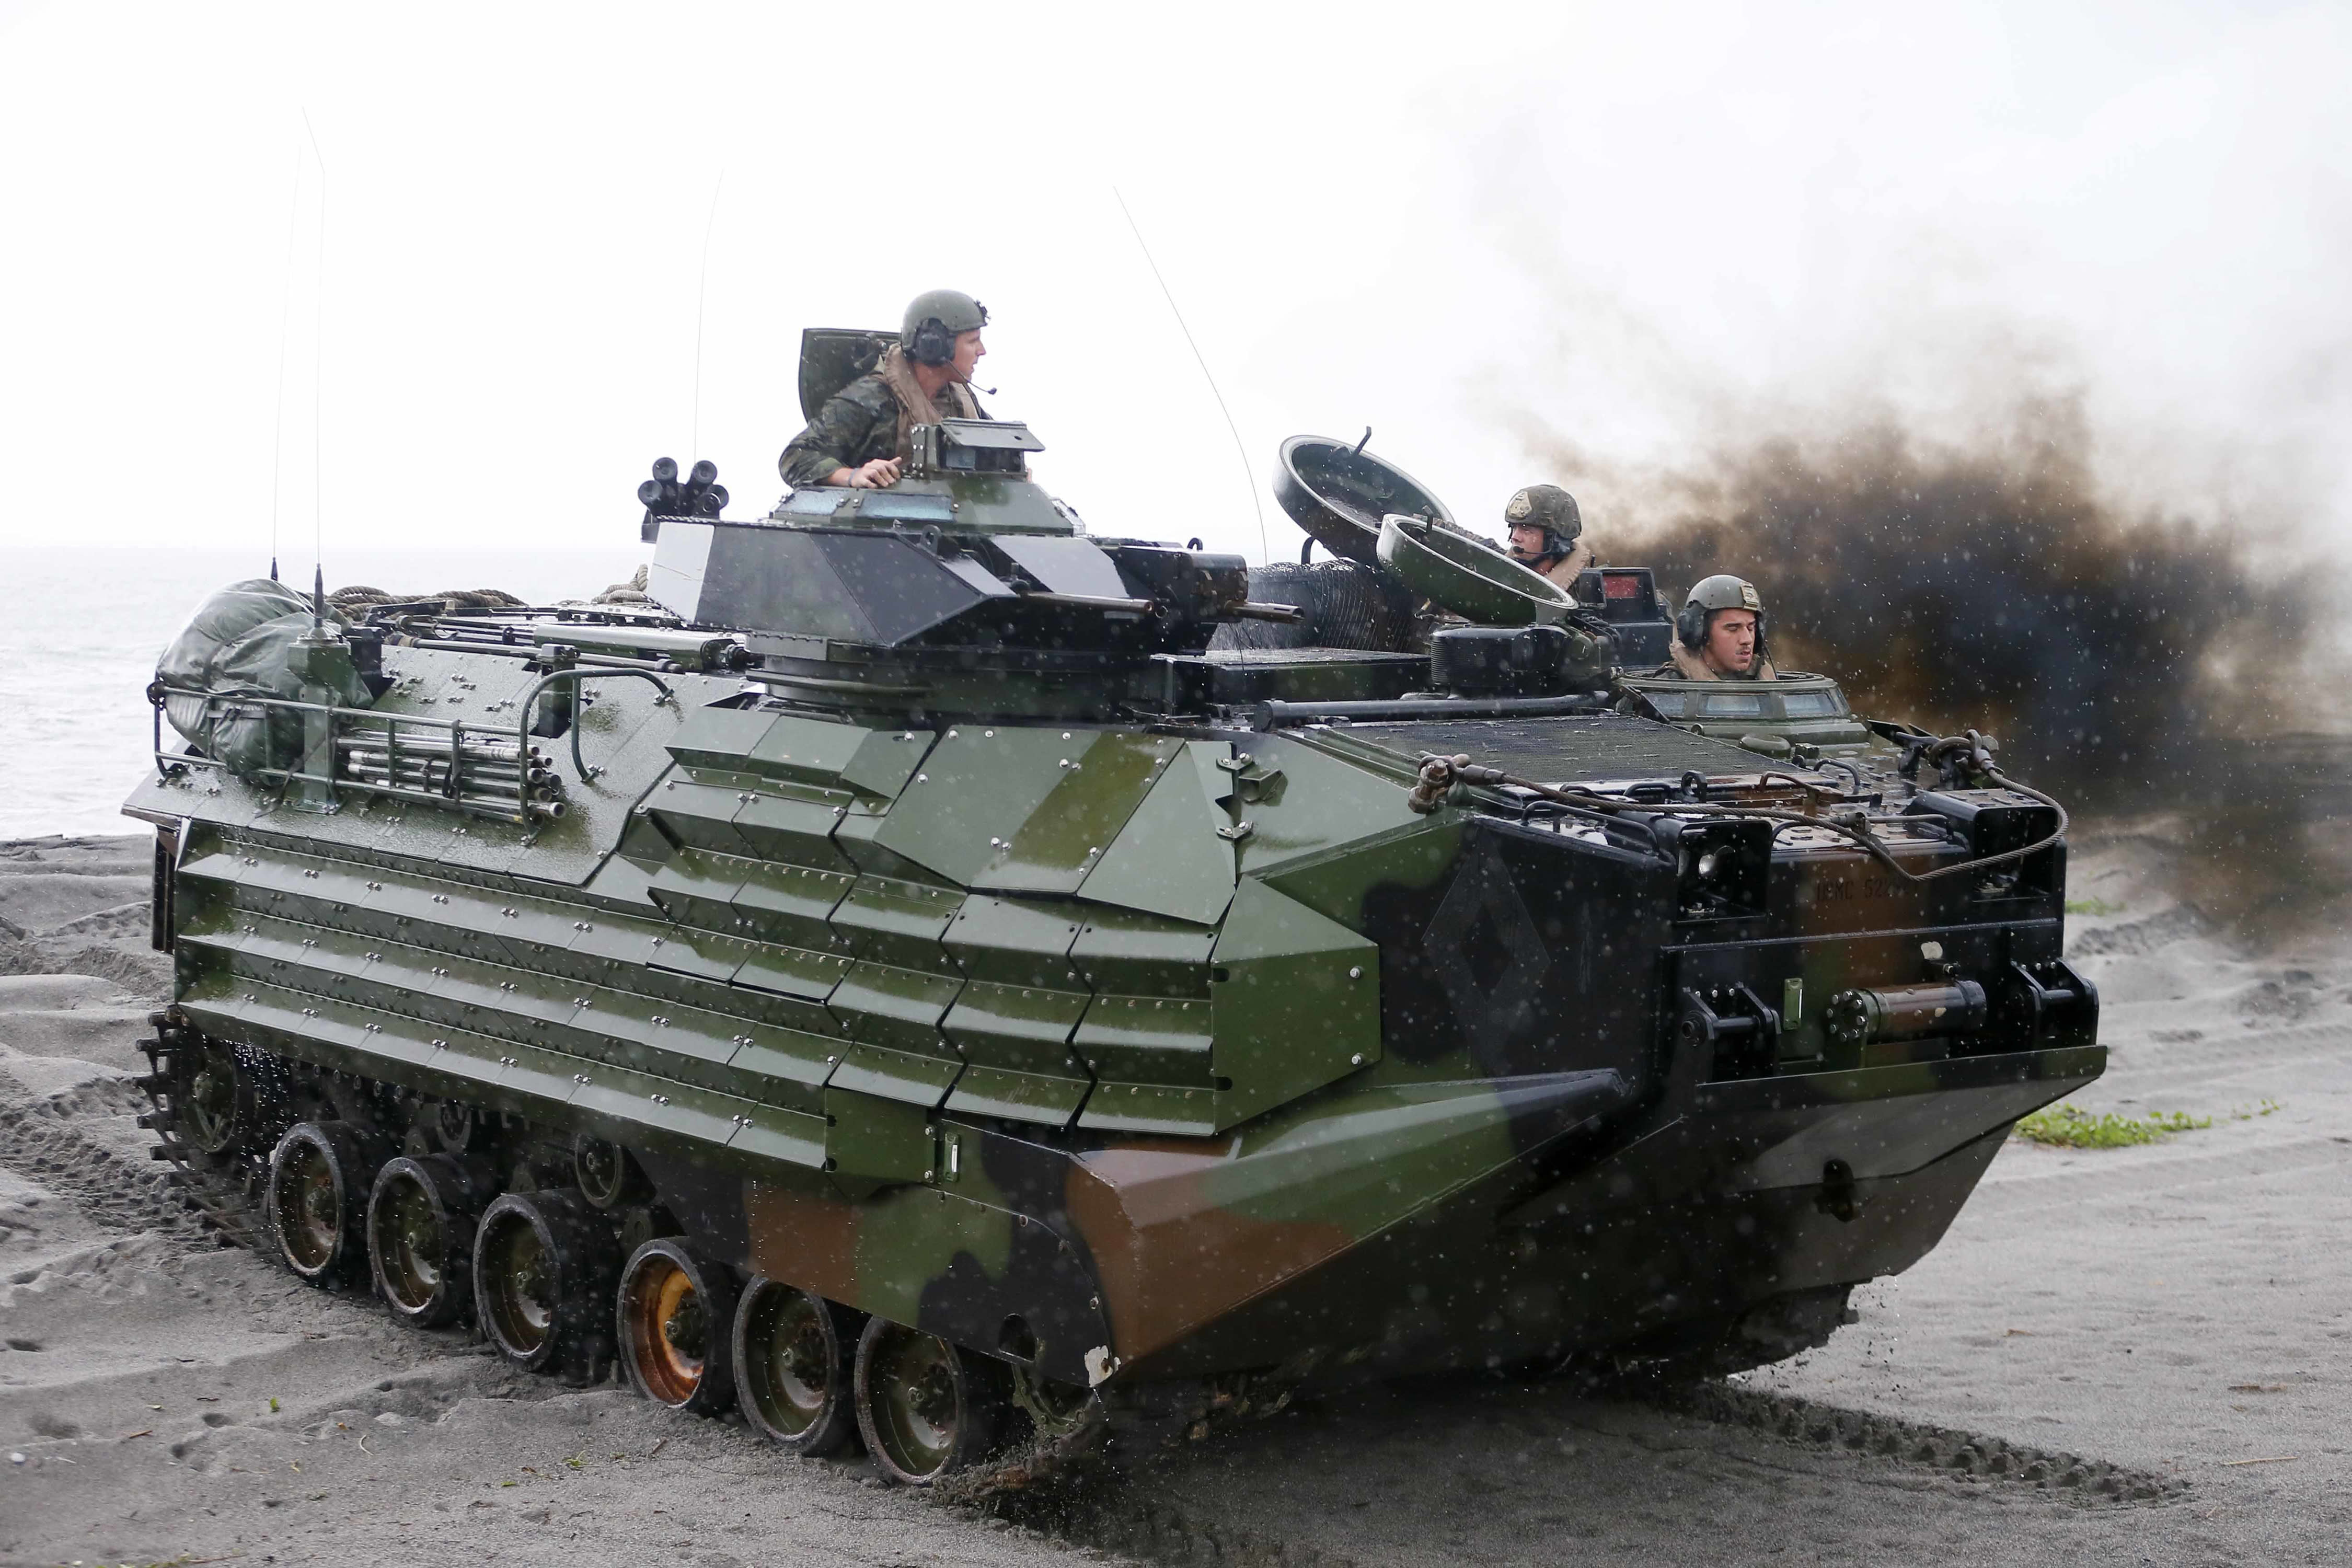 FILE - U.S. Marines from the 3rd Marine Expeditionary Brigade ride on their Amphibious Assault Vehicle (AAV) during the joint US-Philippines amphibious landing exercise Friday Oct.7, 2016 at Naval Education Training Command in San Antonio northwest of Manila, Philippines. A training accident off the coast of Southern California in an AAV similar to this one has taken the life of one Marine, injured two others and left eight missing Thursday, July 30, 2020. In a Friday morning tweet, the Marines say the accident happened Thursday and search and rescue efforts are underway with support from the Navy and Coast Guard. (AP Photo/Bullit Marquez, File)